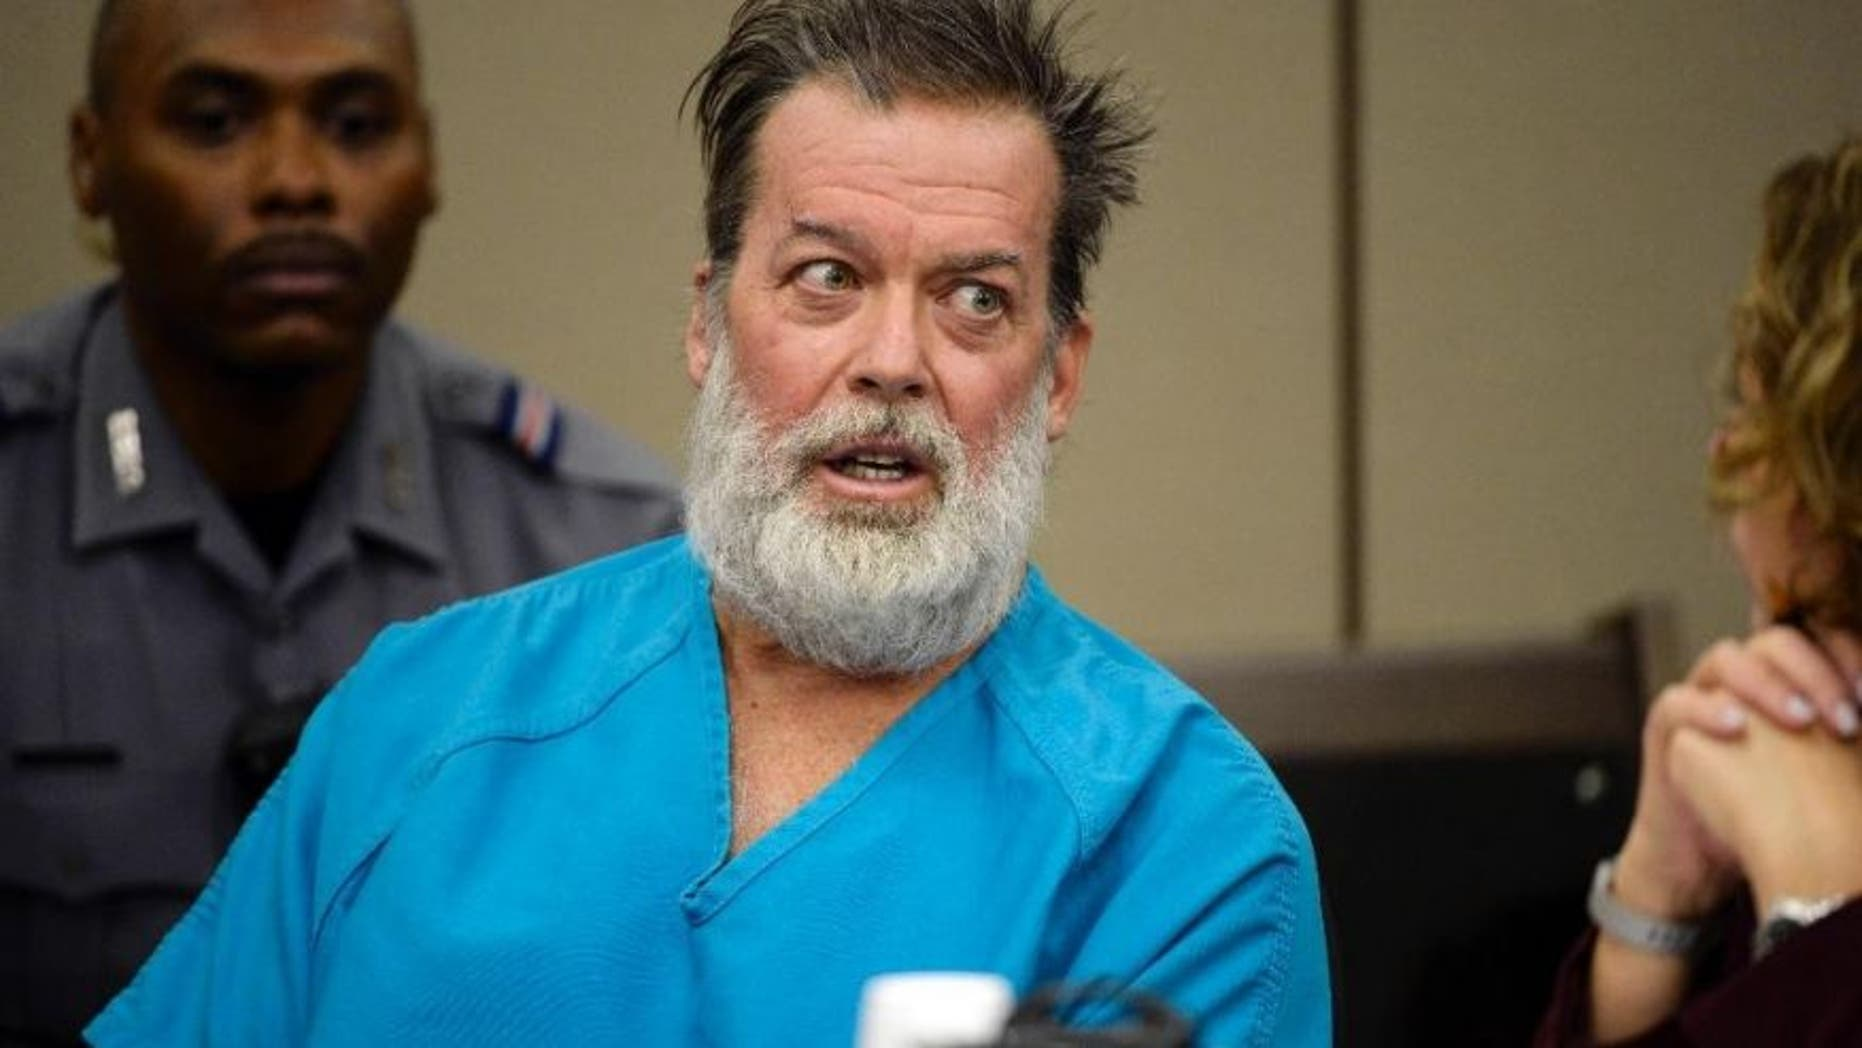 Dec. 9, 2015: Robert Lewis Dear, middle, talks during a court appearance in Colorado Springs, Colo.